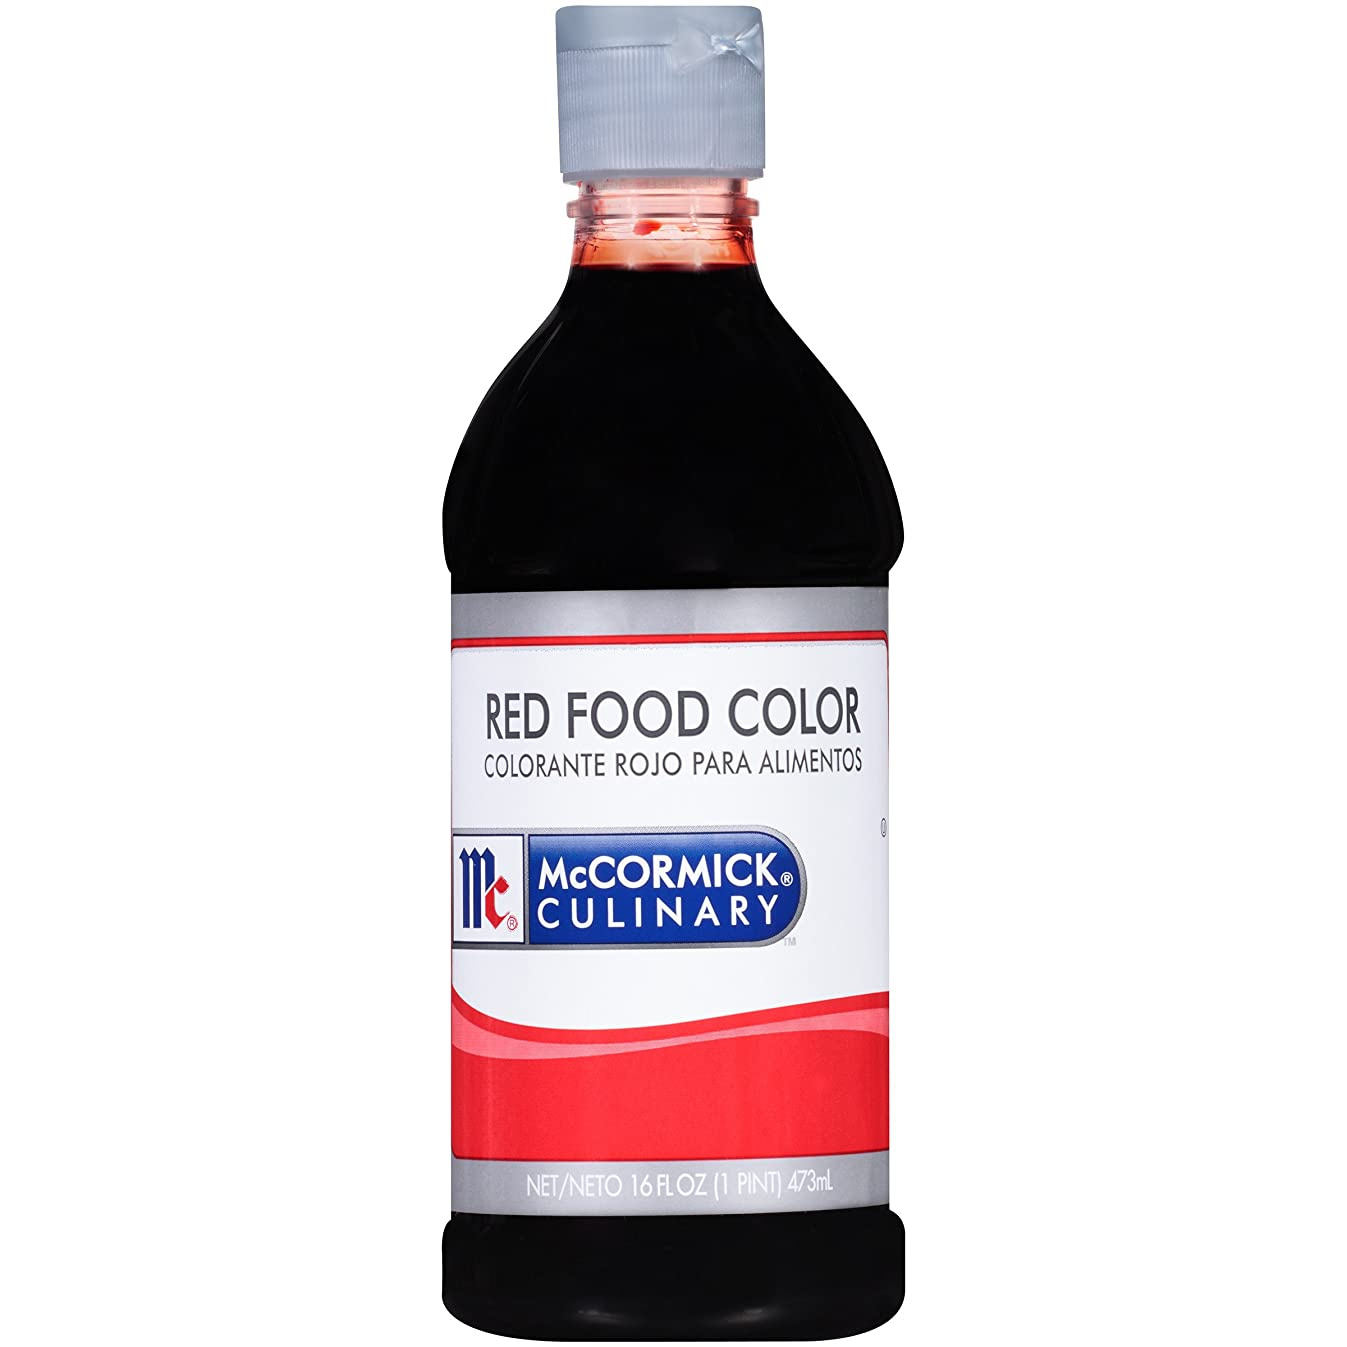 McCormick Culinary Red Food Color, 16 fl oz, Premium Quality, Consistent Color, Perfect for Valentine's Cupcakes, Easter Eggs, Red Velvet Desserts and More